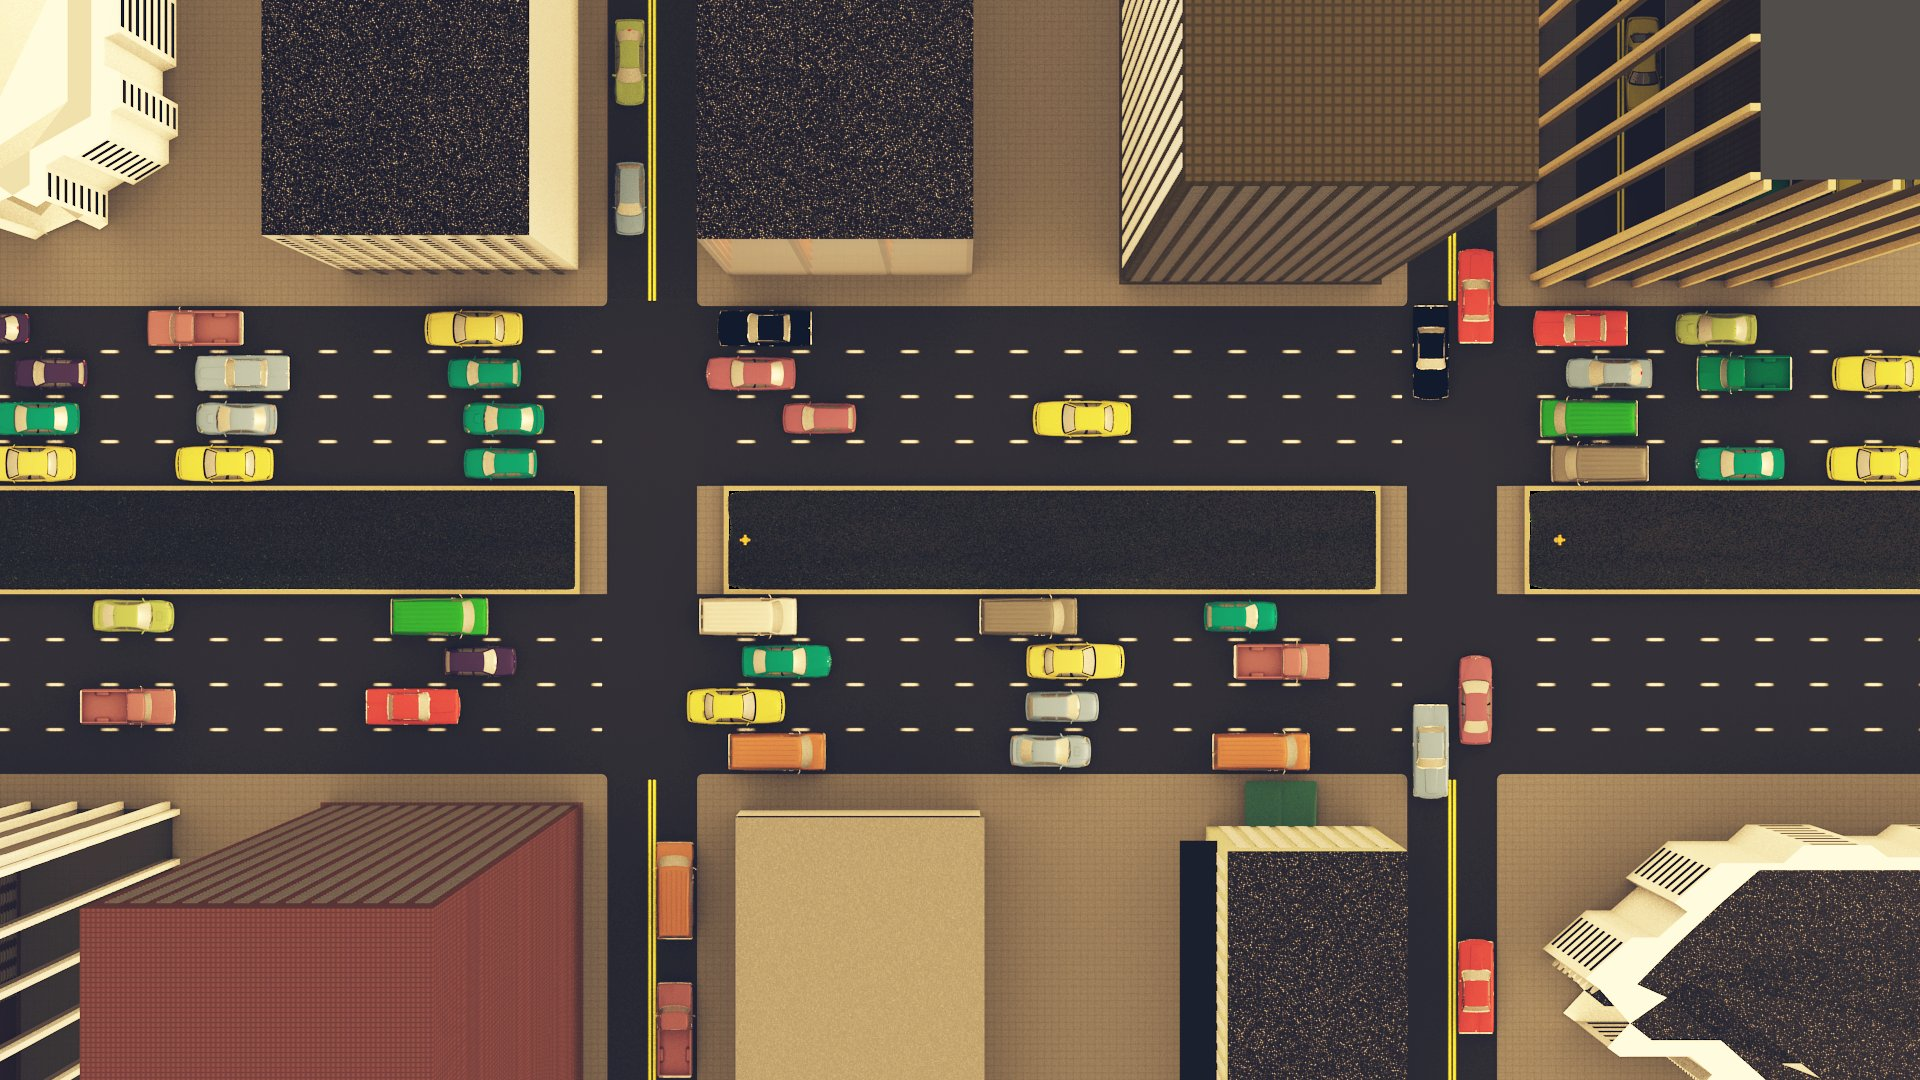 Interactive Hybrid Simulation of LargeScale Traffic